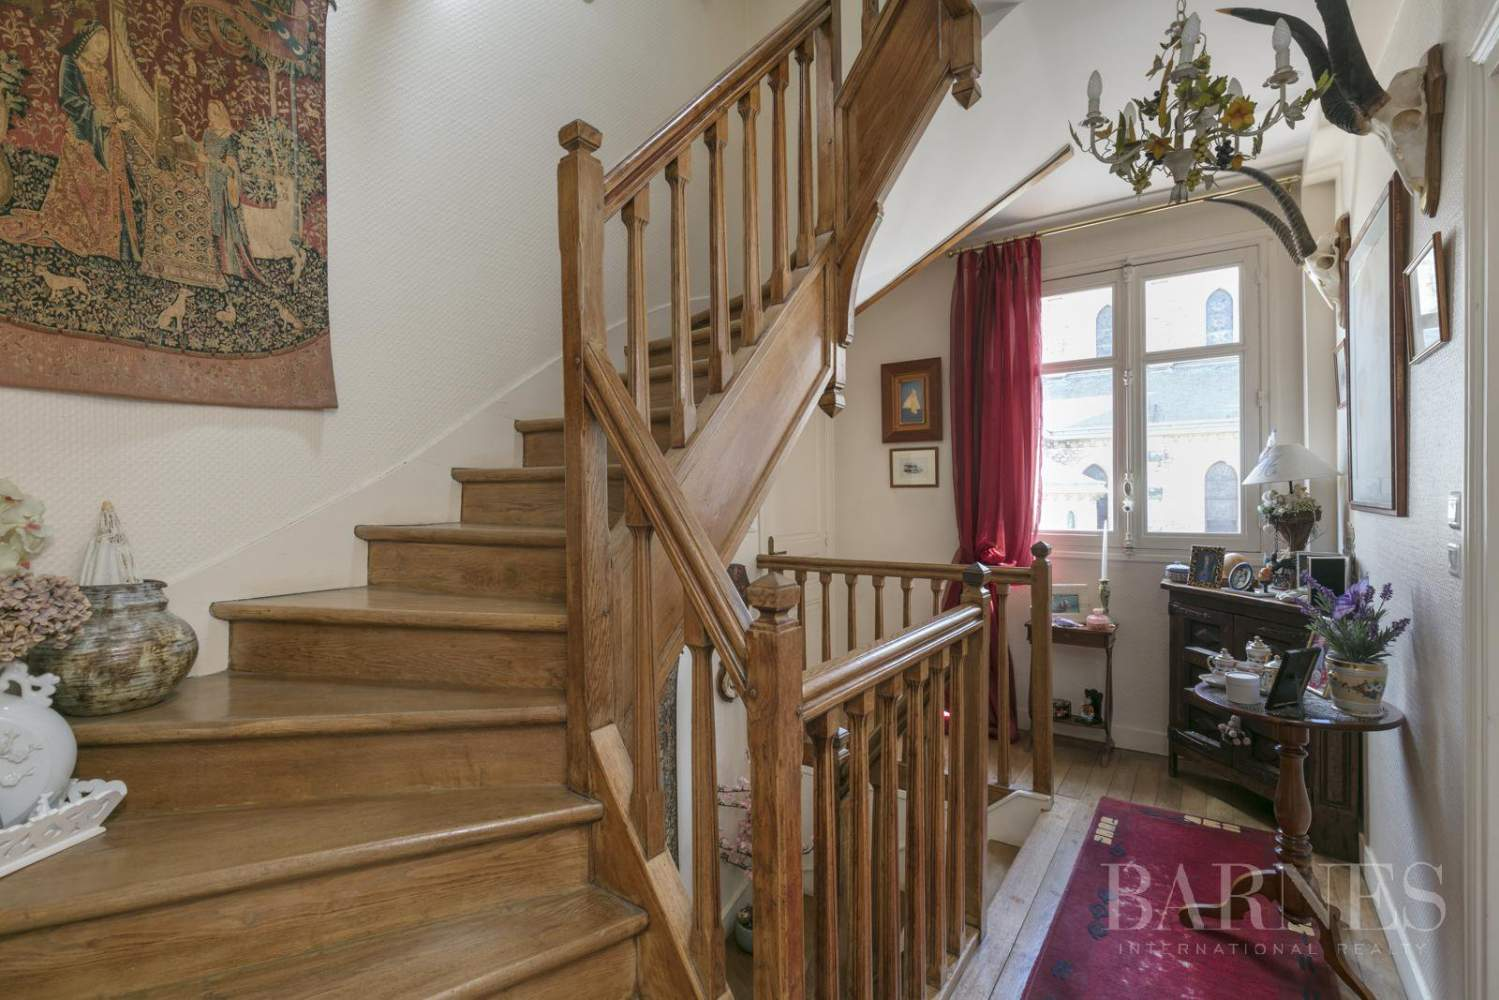 LE CHESNAY - PLATEAU ST ANTOINE 3,498 sq ft HOUSE with INDEPENDENT STUDIOS - GARAGE picture 7